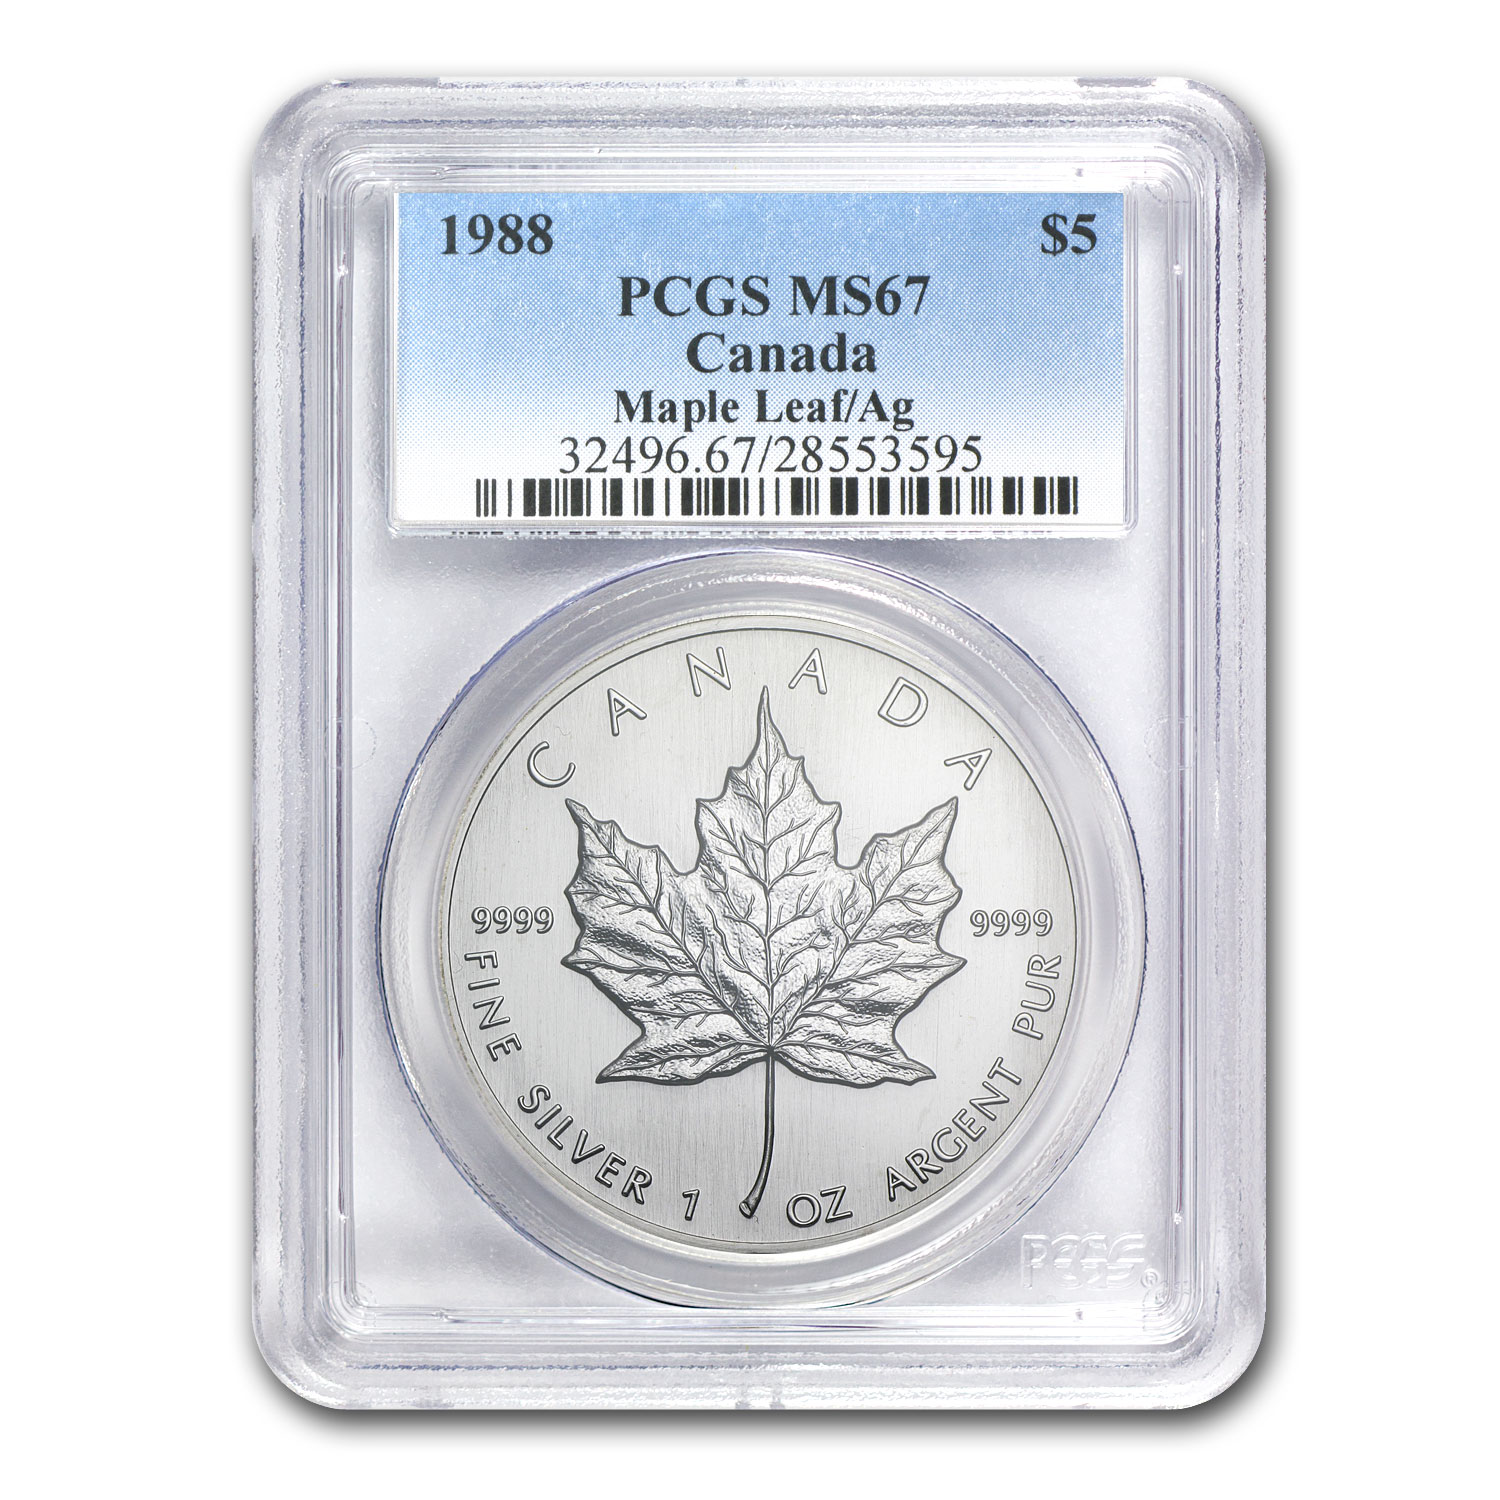 1988 1 oz Silver Canadian Maple Leaf MS-67 PCGS